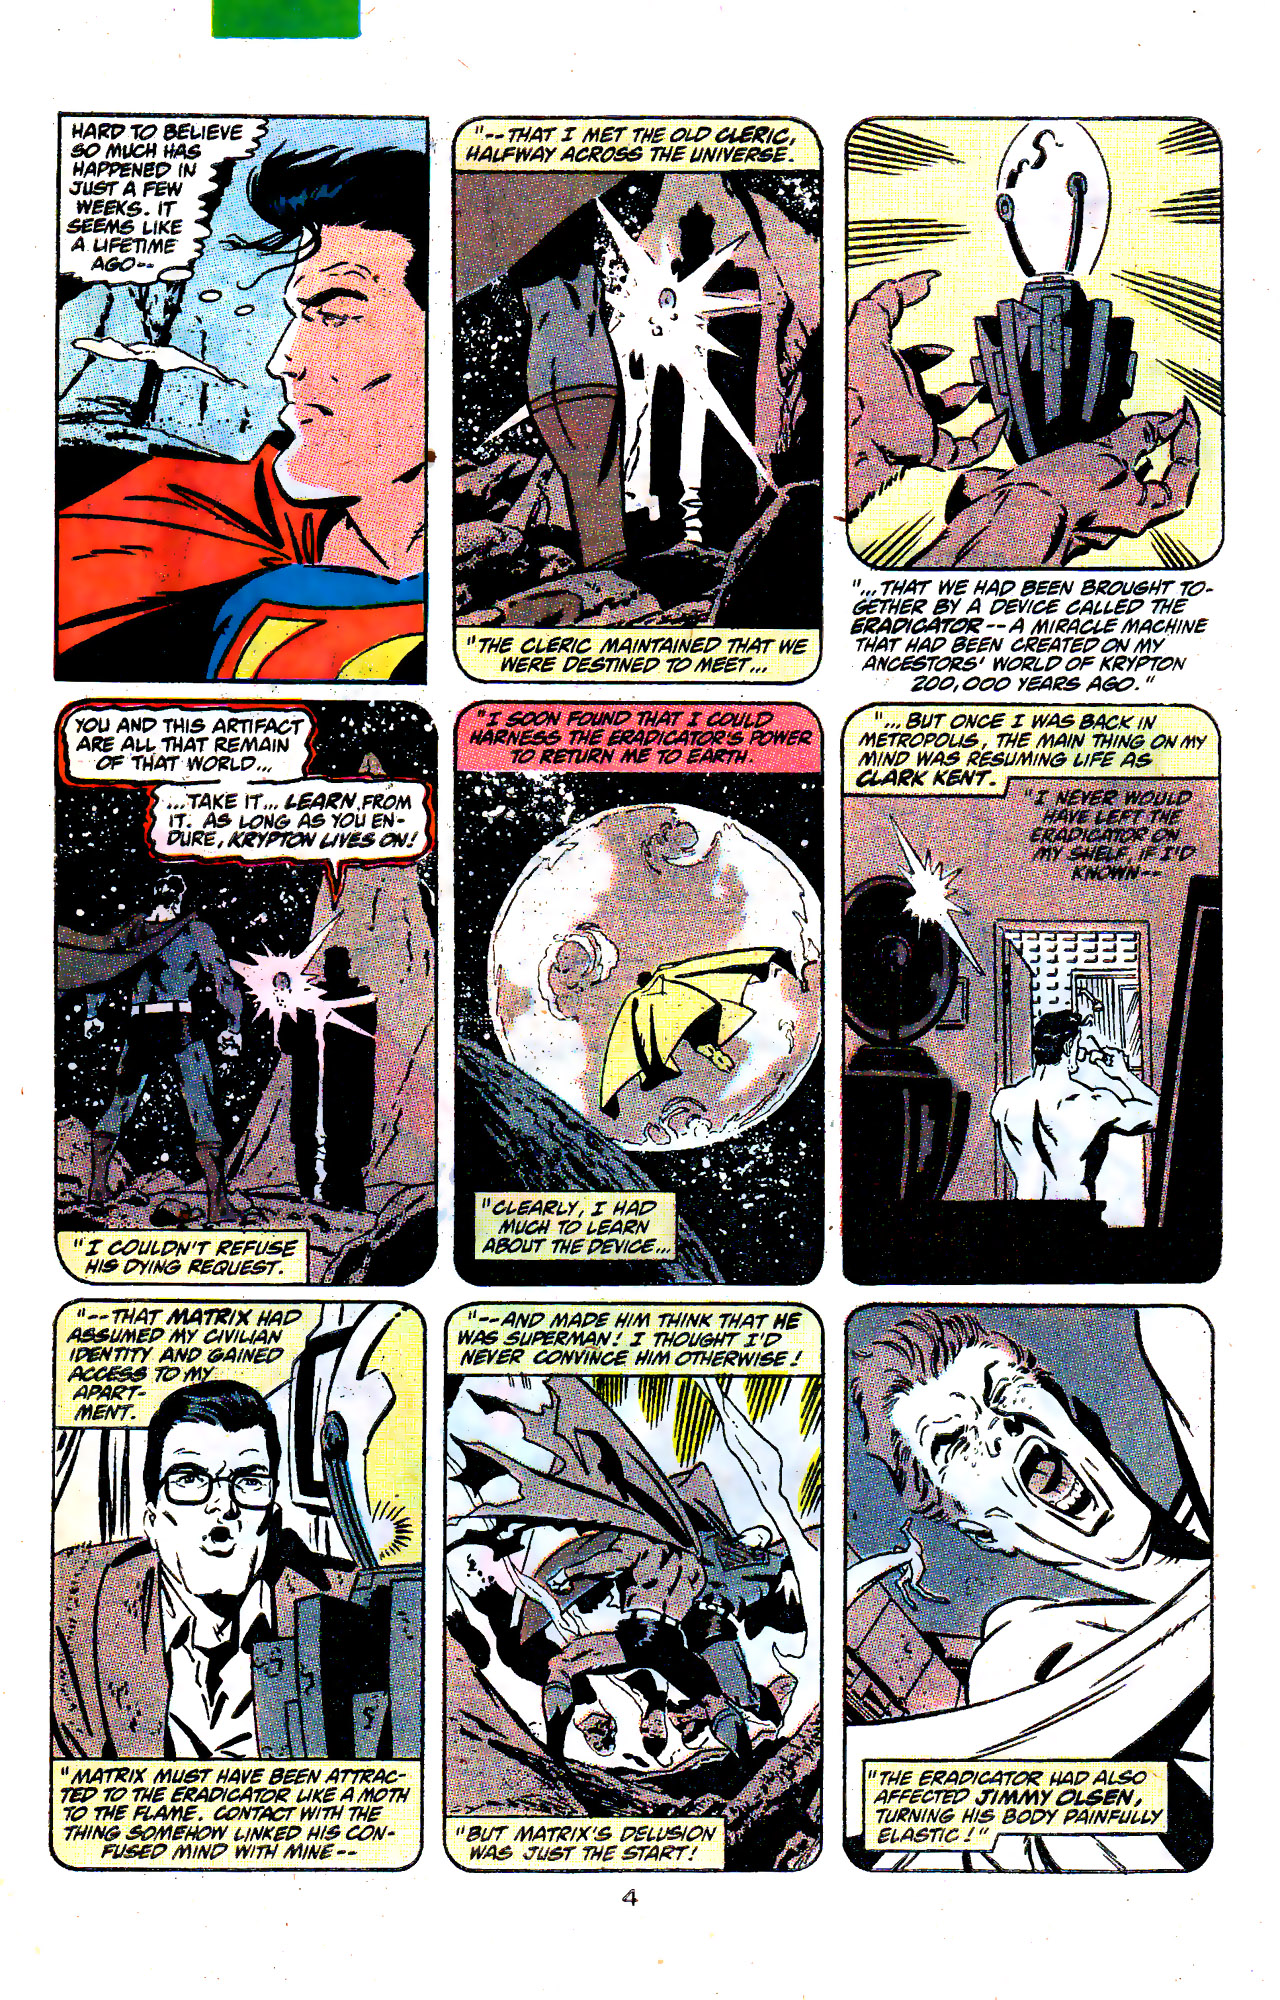 Action Comics (1938) 646 Page 4